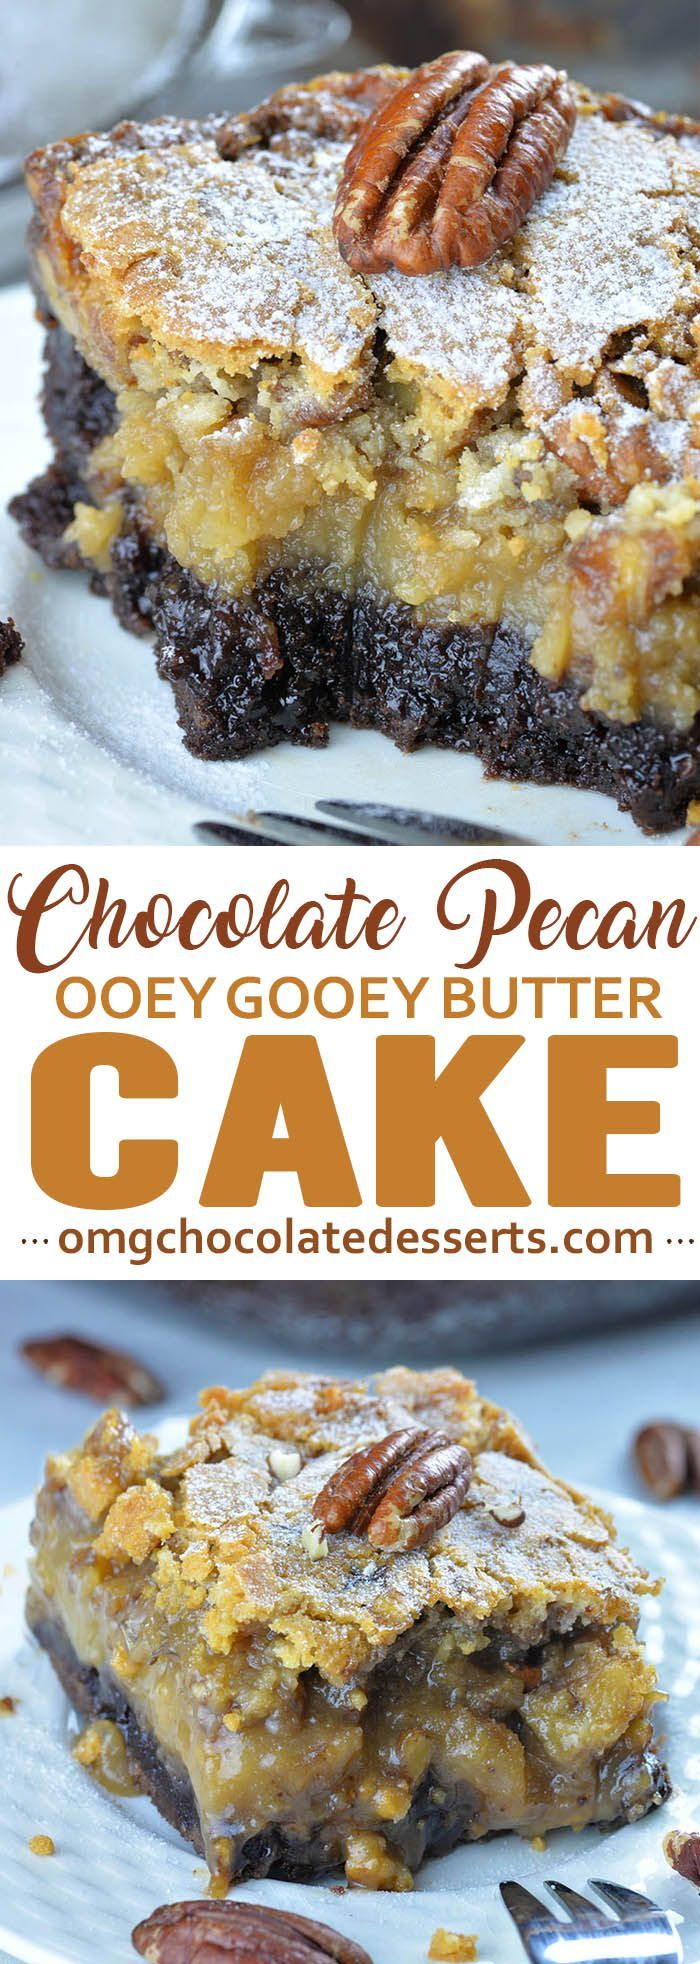 Chocolate Pecan Ooey Gooey Butter Cake These Easy …